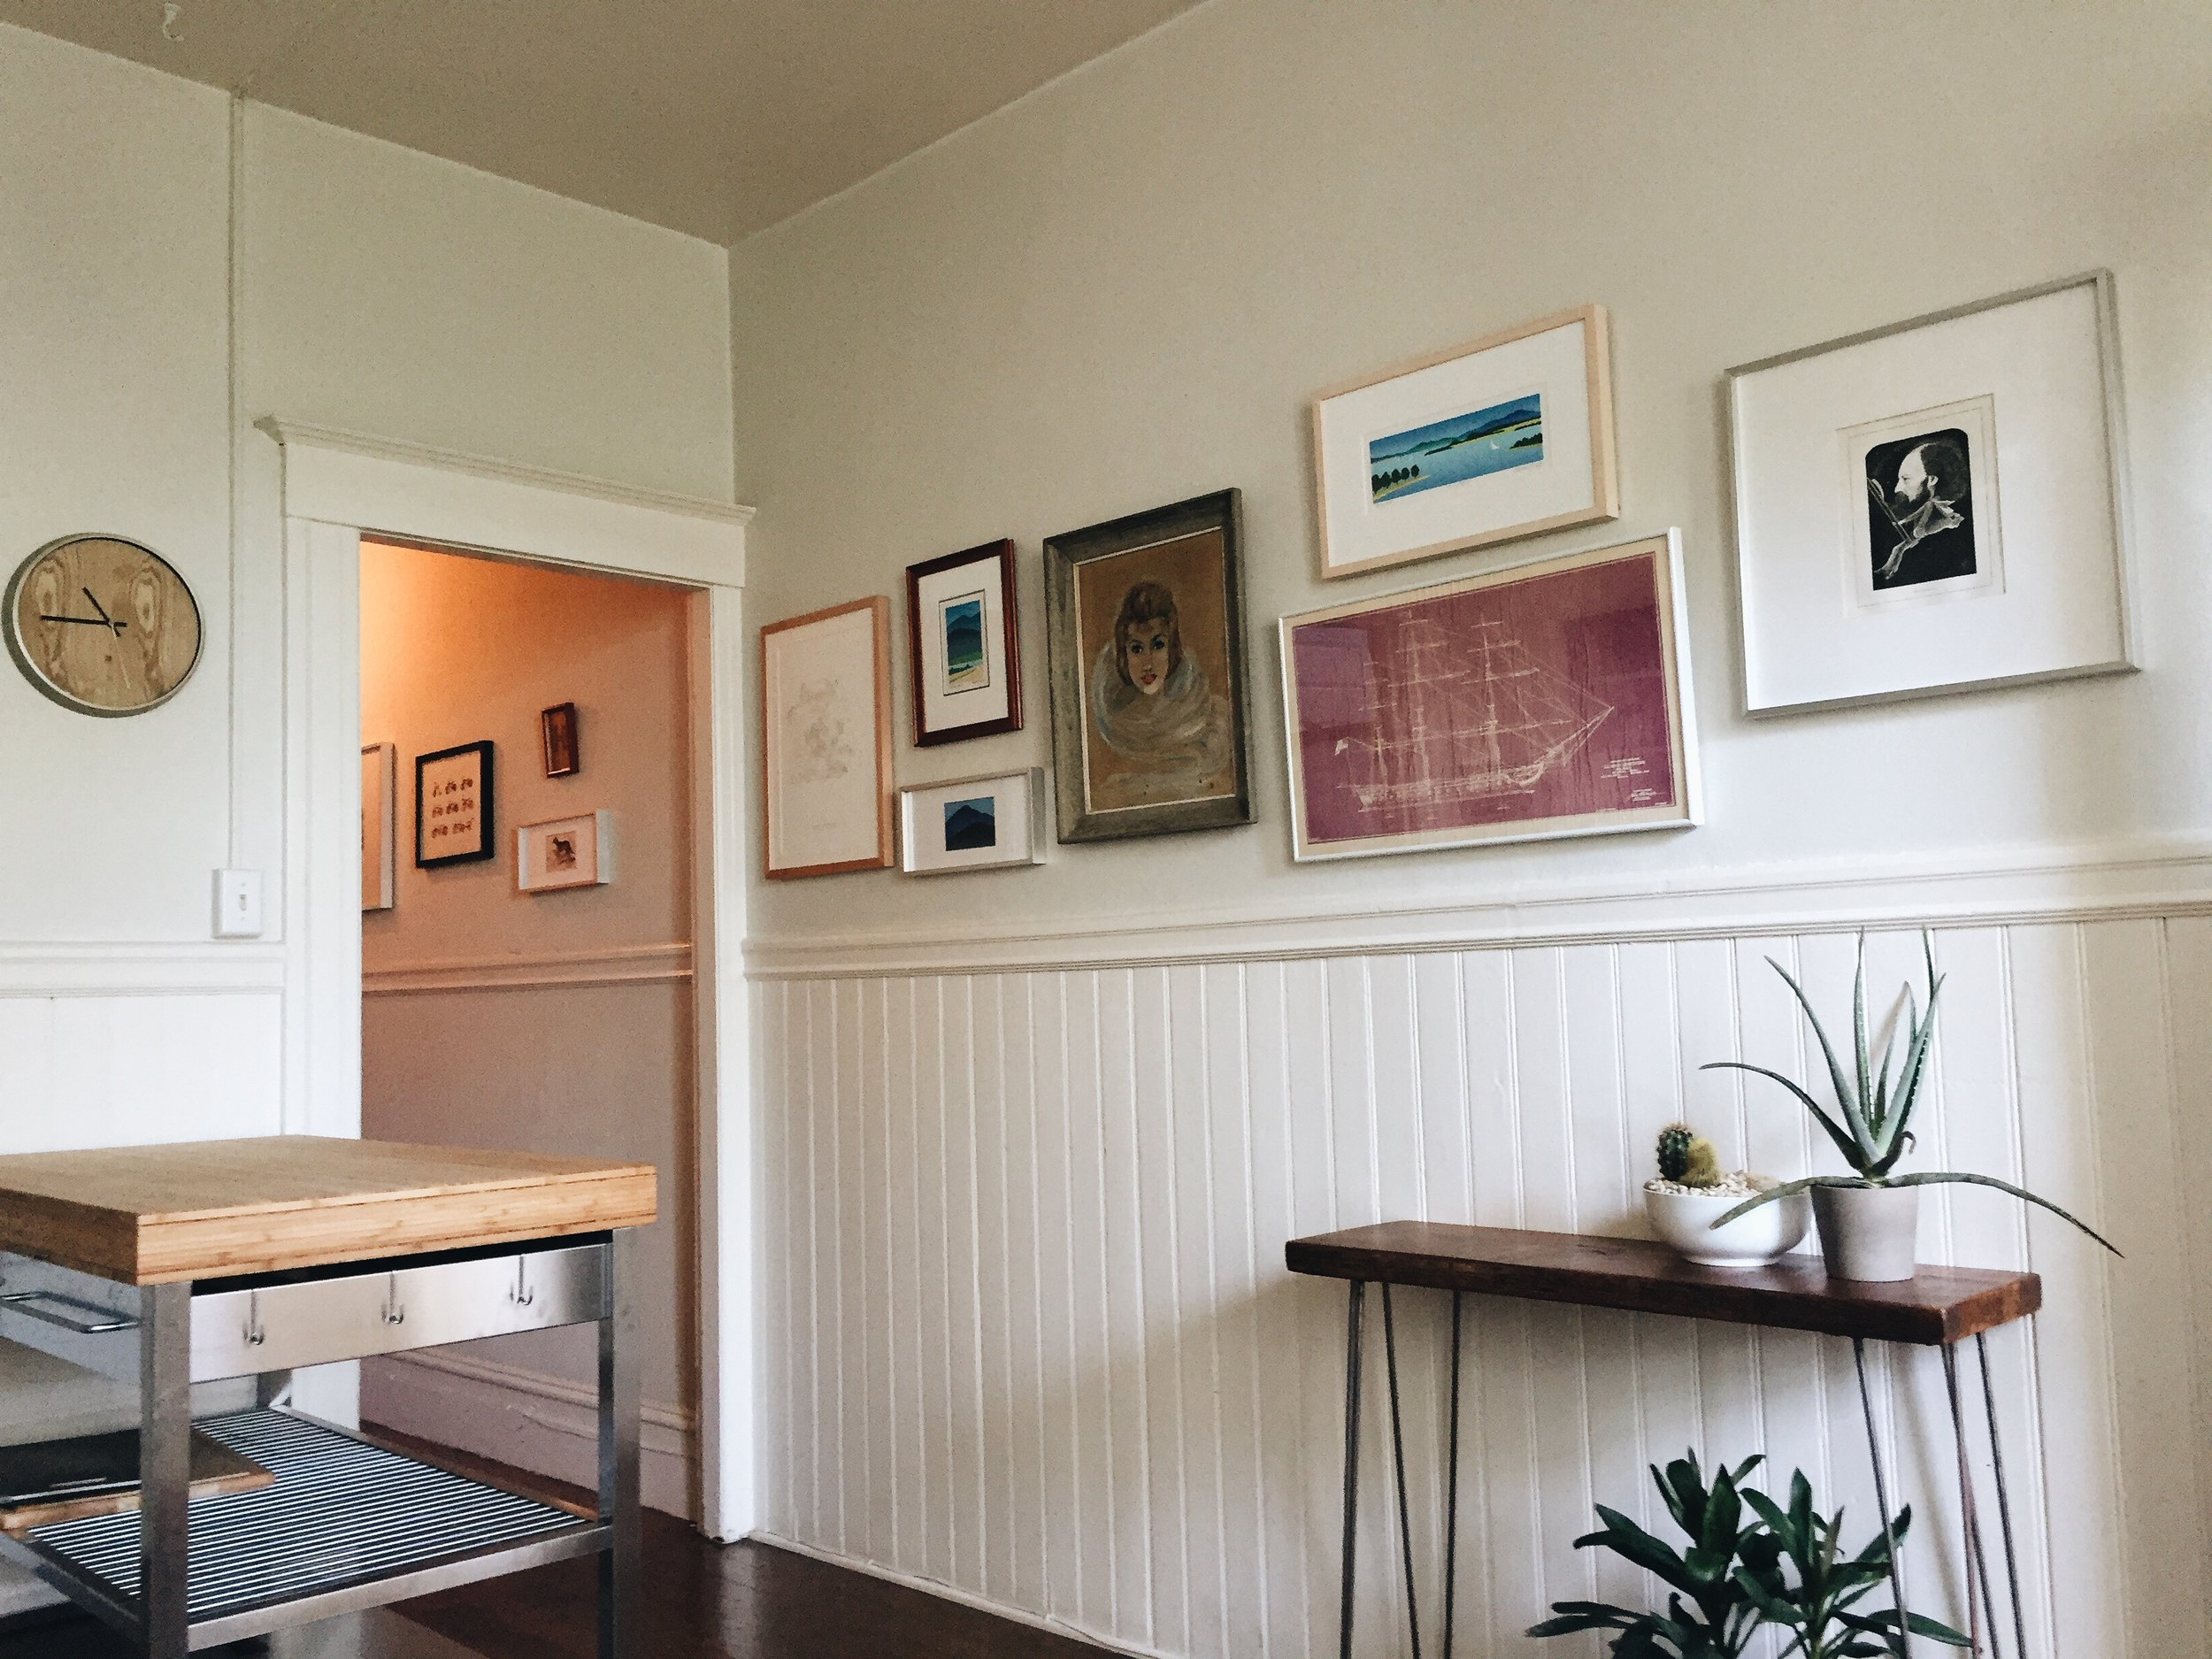 Then you can walk down a long hallway to the kitchen. We hung up a lot of art and basically made a really long gallery wall leading into the kitchen area. We are pretty happy with it.